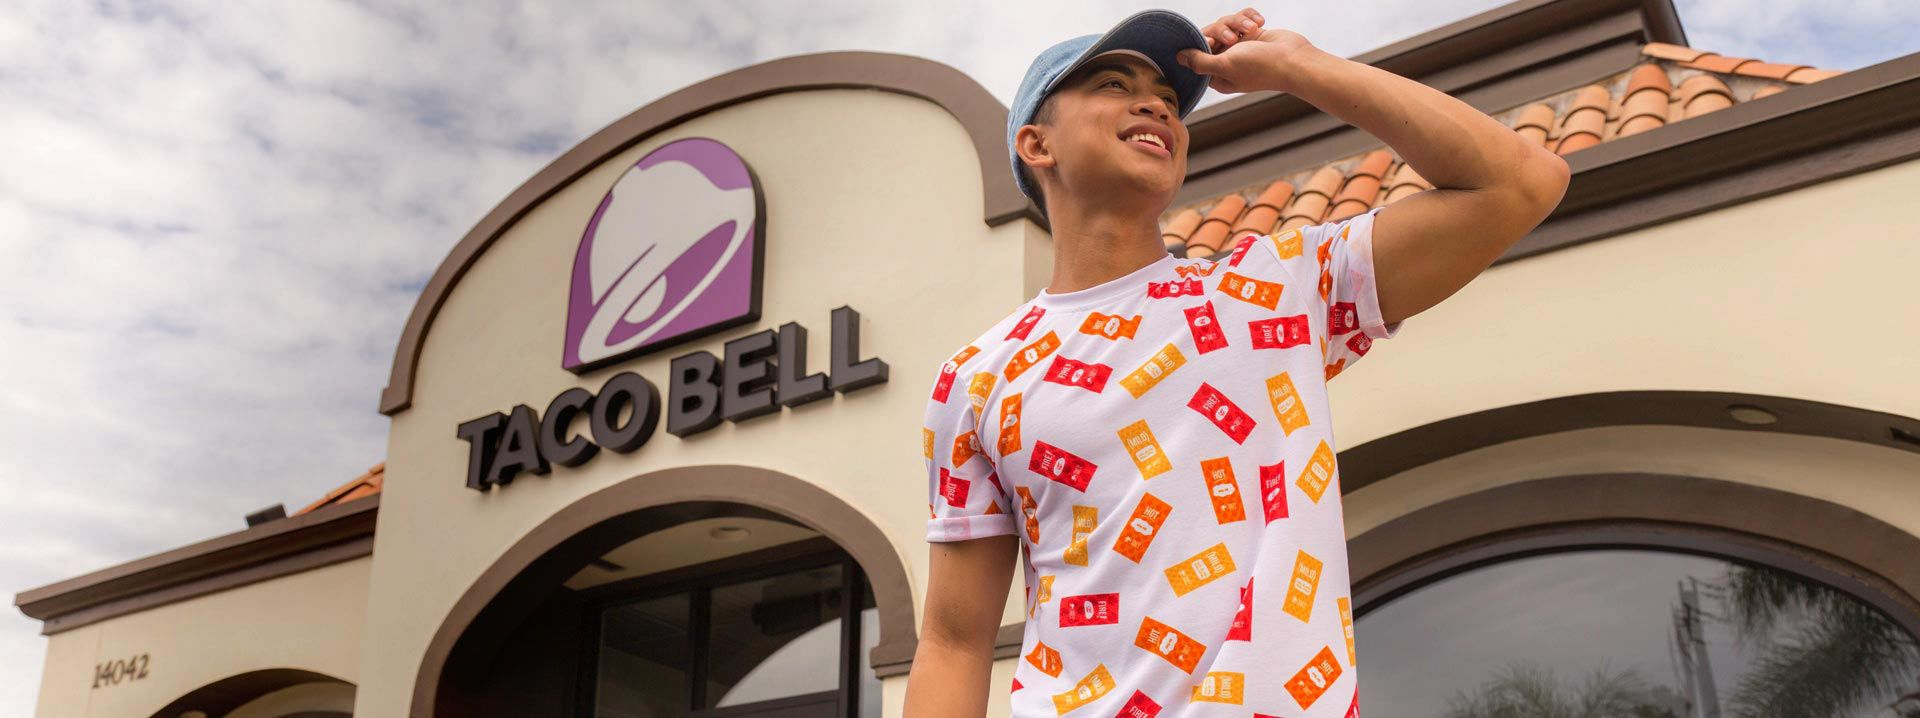 Merch Lessons from Fast Food Giants & Junk Food Brands